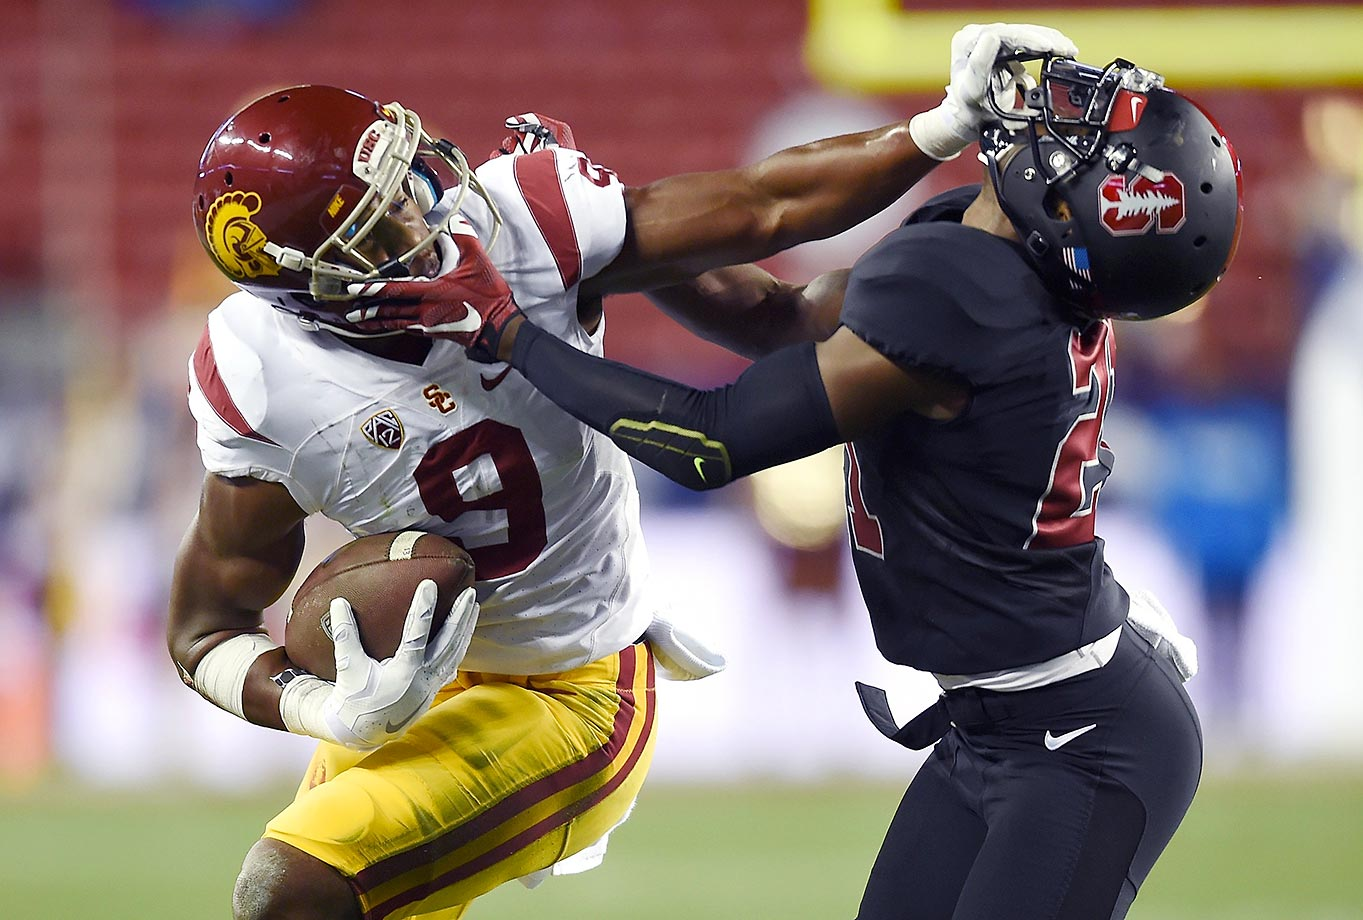 JuJu Smith-Schuster of USC stiff arms Ronnie Harris of Stanford in the Pac-12 Championship game.